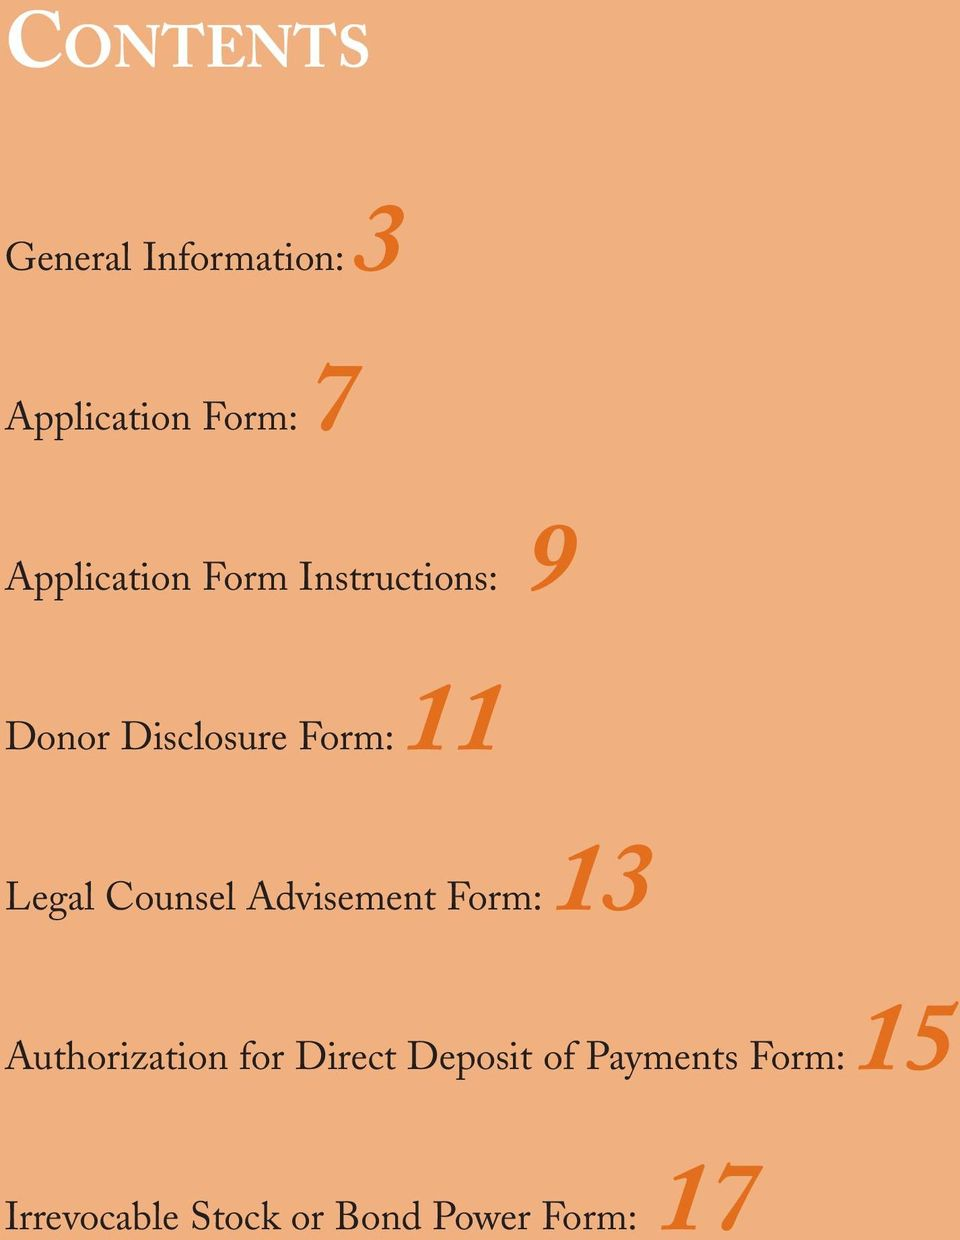 Legal Counsel Advisement Form:13 Authorization for Direct